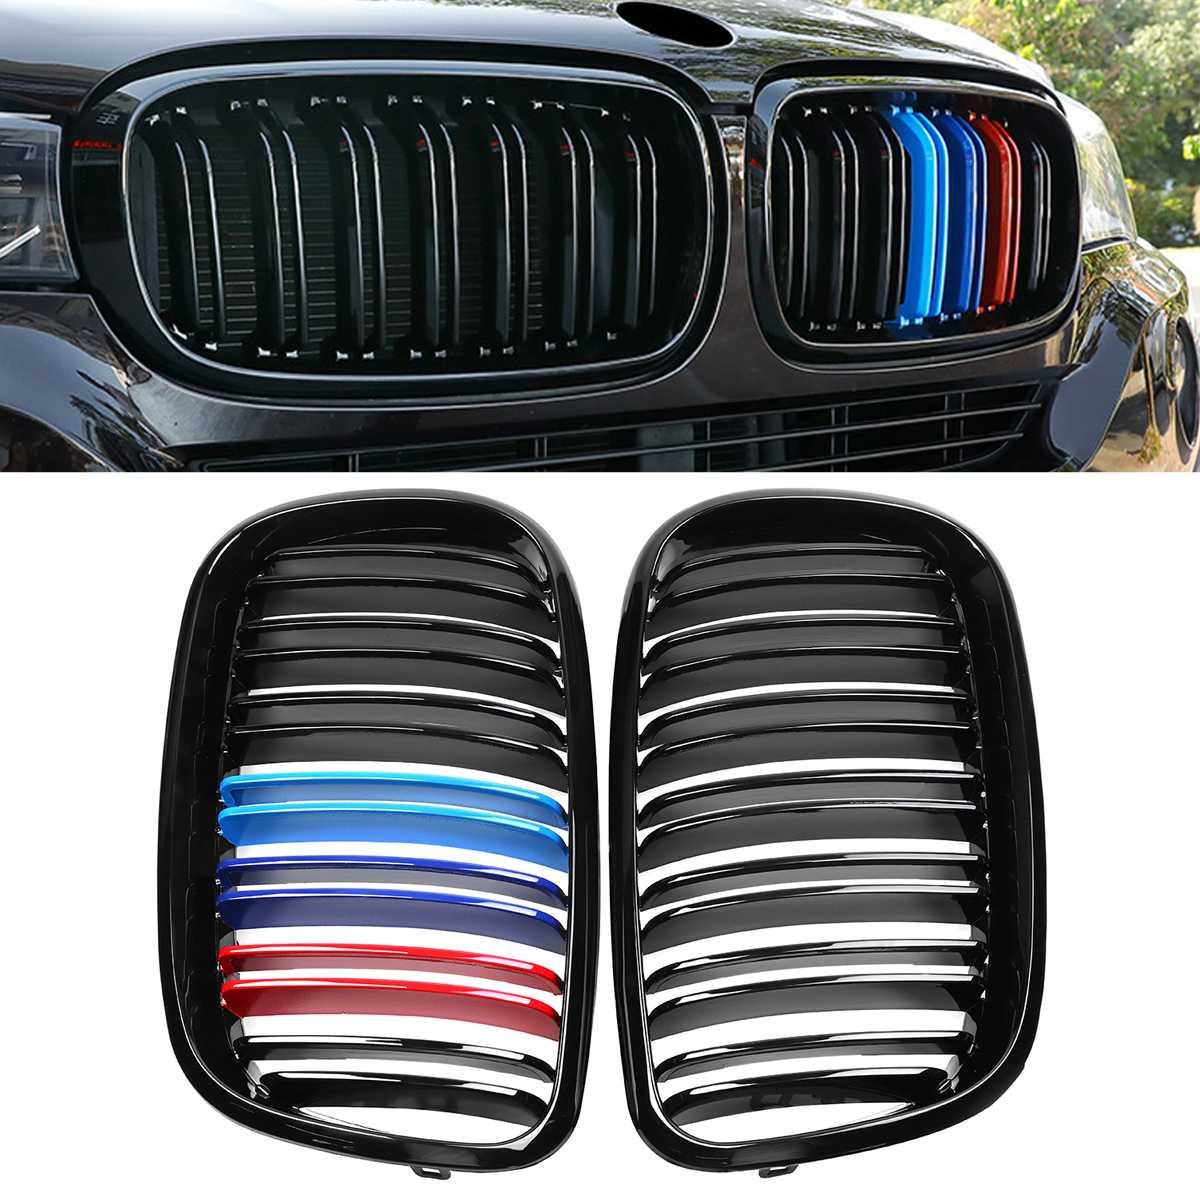 A Pair For 2007-2013 For BMW X5 X6 E70 E71 Car Front Bumper Grille Grill Cover Trim Kidney Glossy Black M-ColorA Pair For 2007-2013 For BMW X5 X6 E70 E71 Car Front Bumper Grille Grill Cover Trim Kidney Glossy Black M-Color